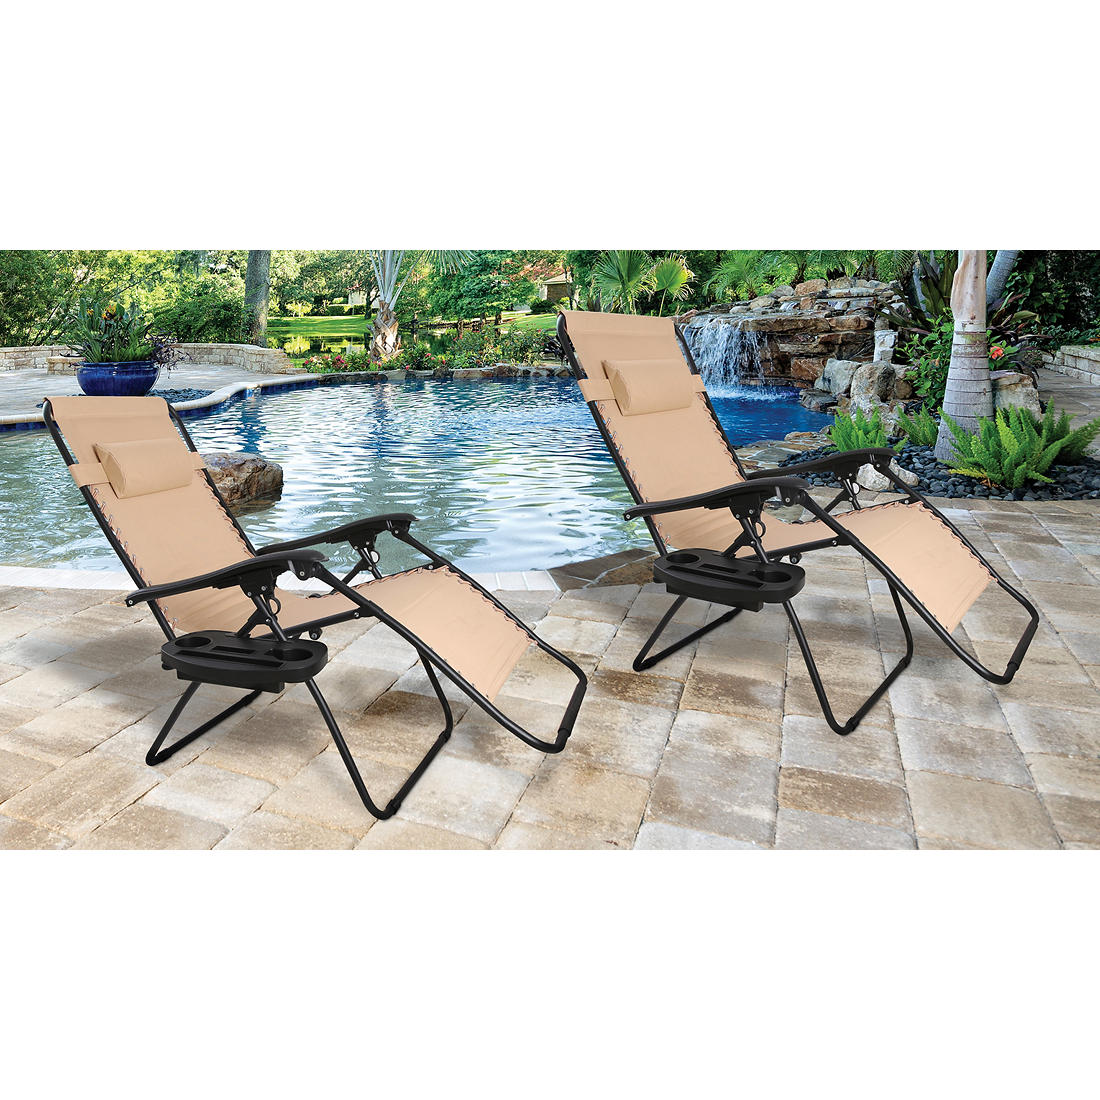 Peachy Berkley Jensen Zero Gravity Chair 2 Pk Tan Ibusinesslaw Wood Chair Design Ideas Ibusinesslaworg